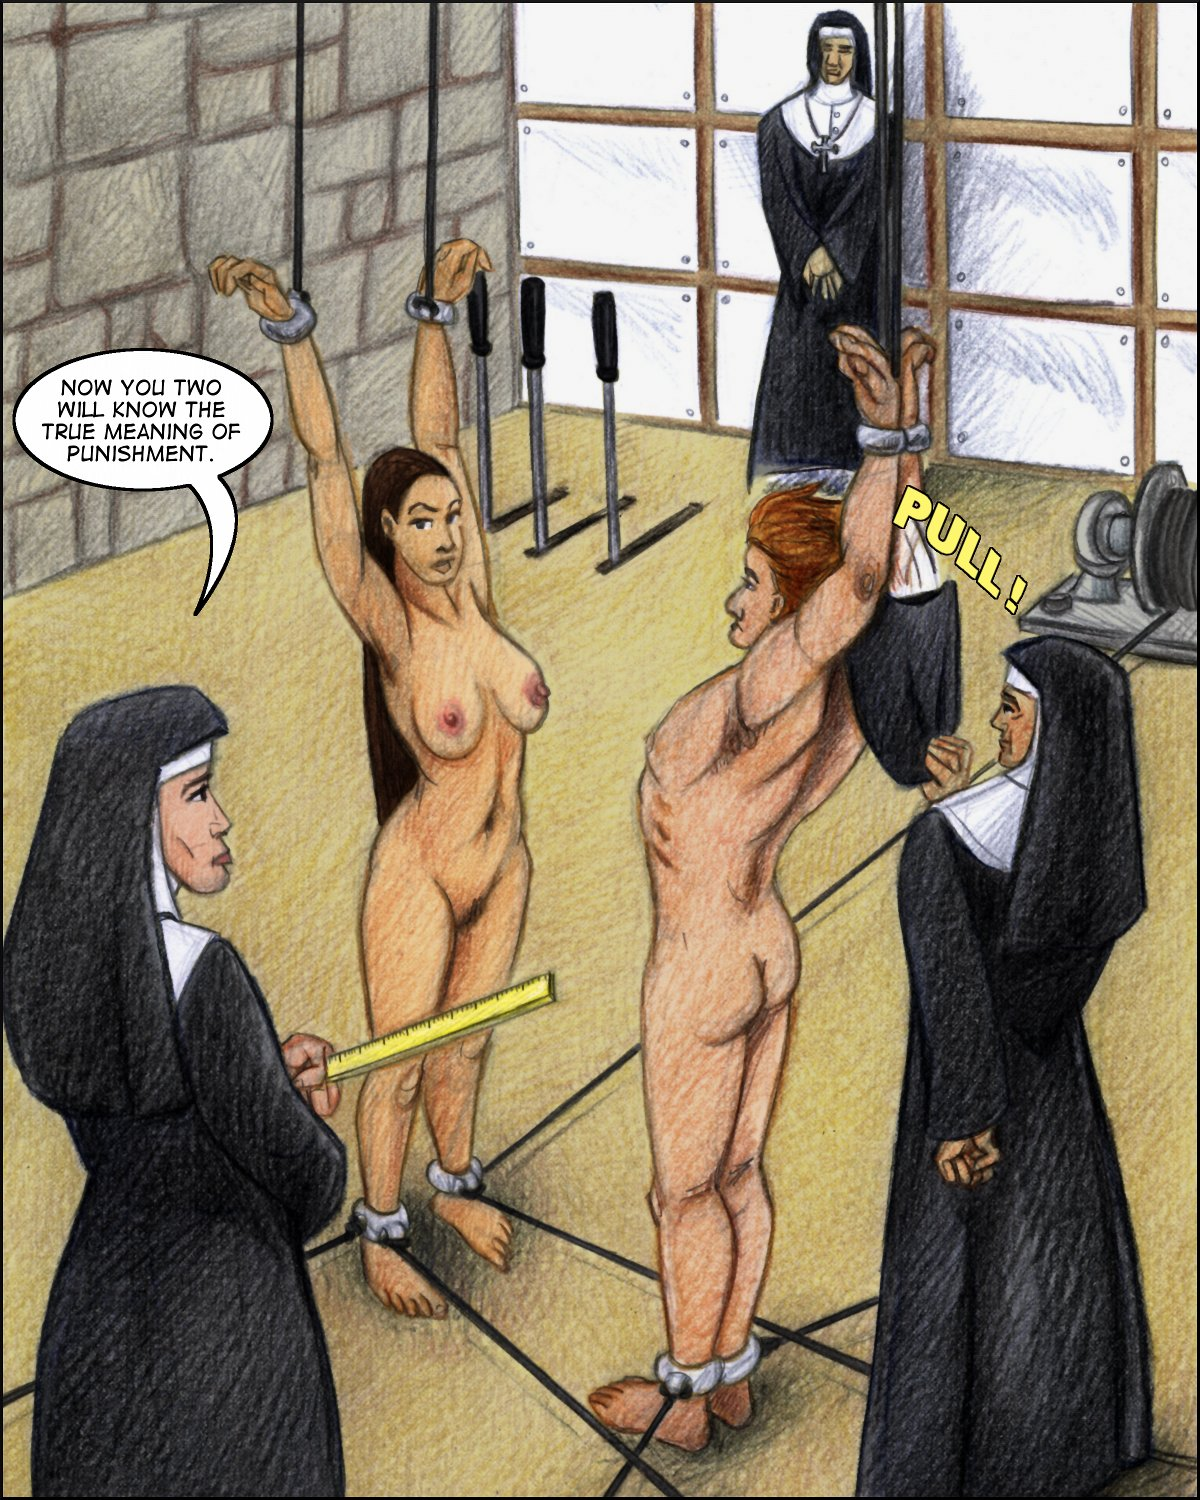 Willie and Rayna in a nuns' bondage dungeon!